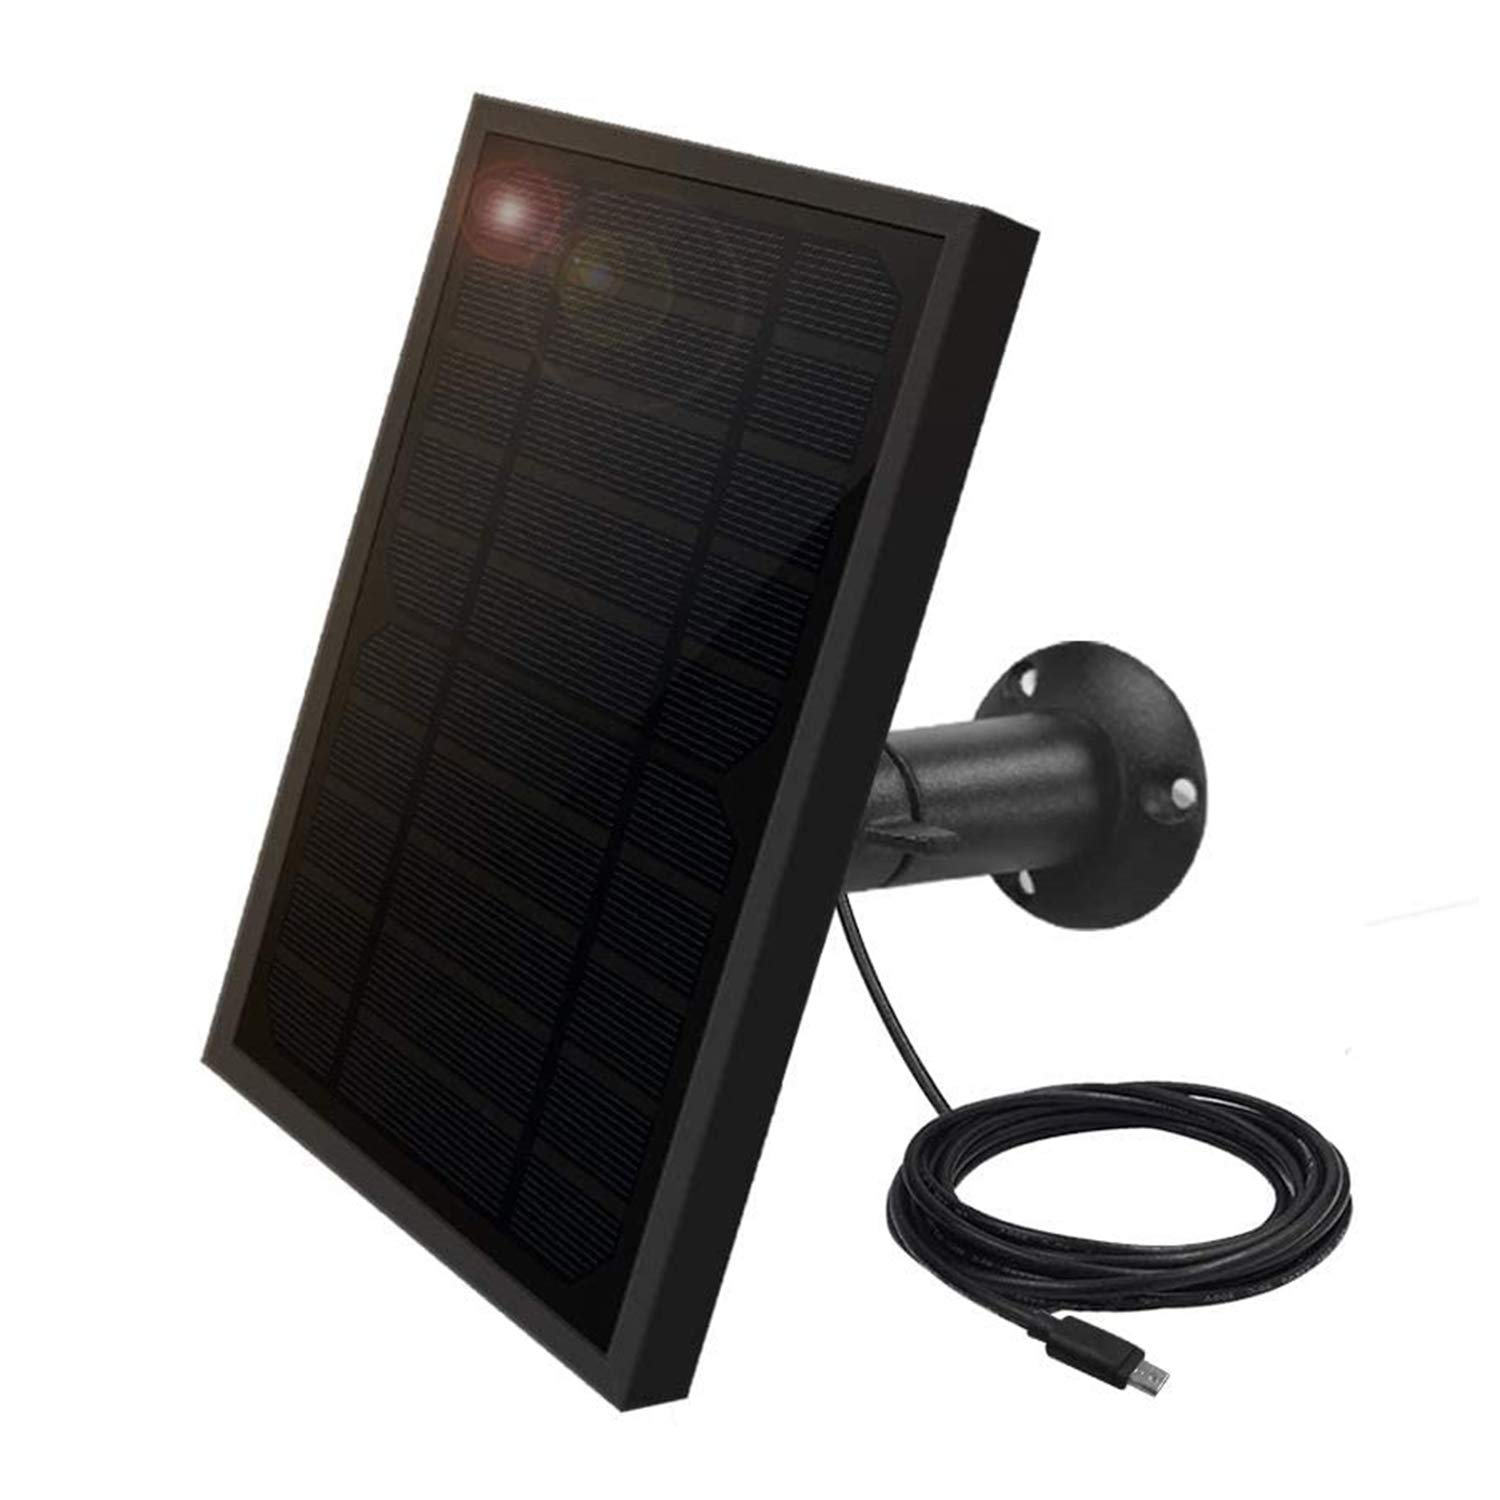 Weatherproof Solar Panel for Indoor / Outdoor Battery Powered Security Camera, Solar Panel Power Supply for ViewZone Wireless Security Camera, 5V 1A Micro USB Port, Adjustable Mounting Bracket